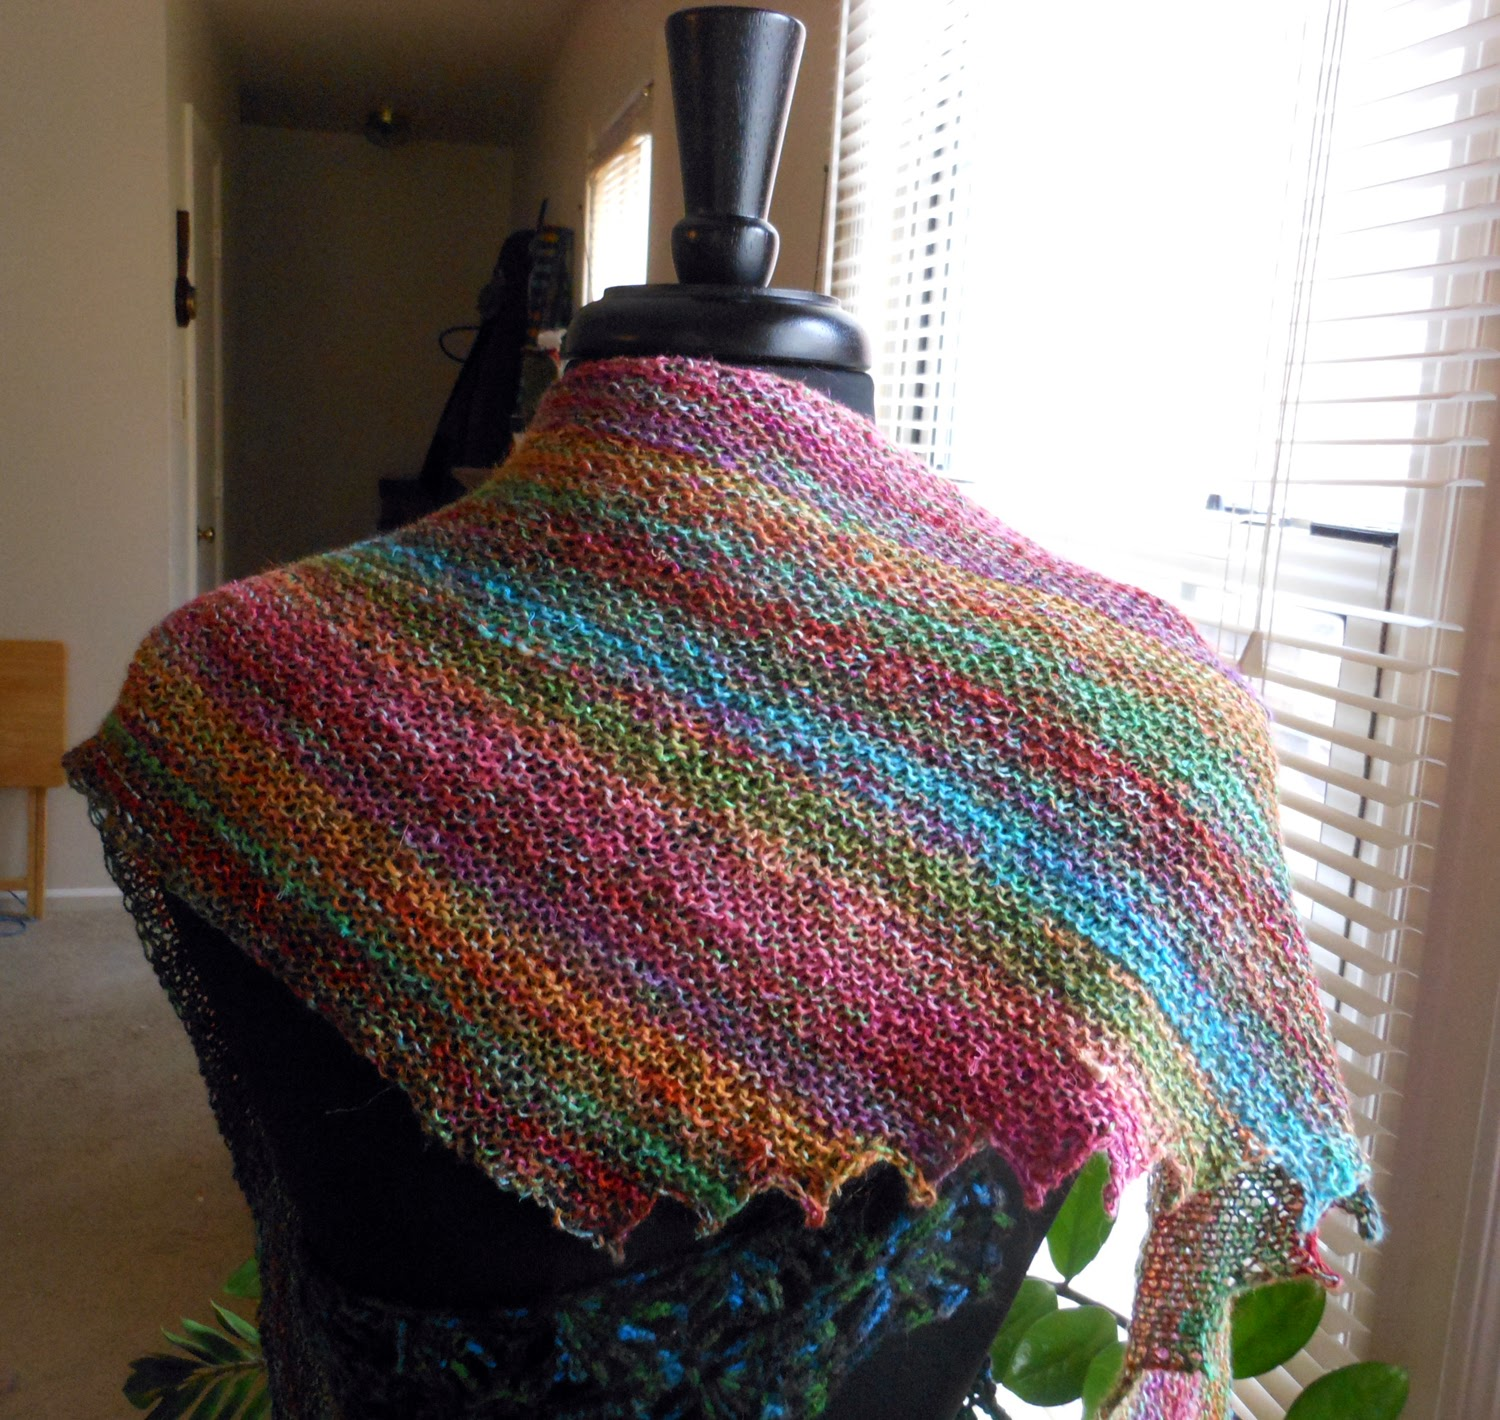 Hitchhiker shawl knit from Noro Katsura for my mom Mom loves Noro and  Mother In Law Lion Brand Free Knitted Scarf Patterns